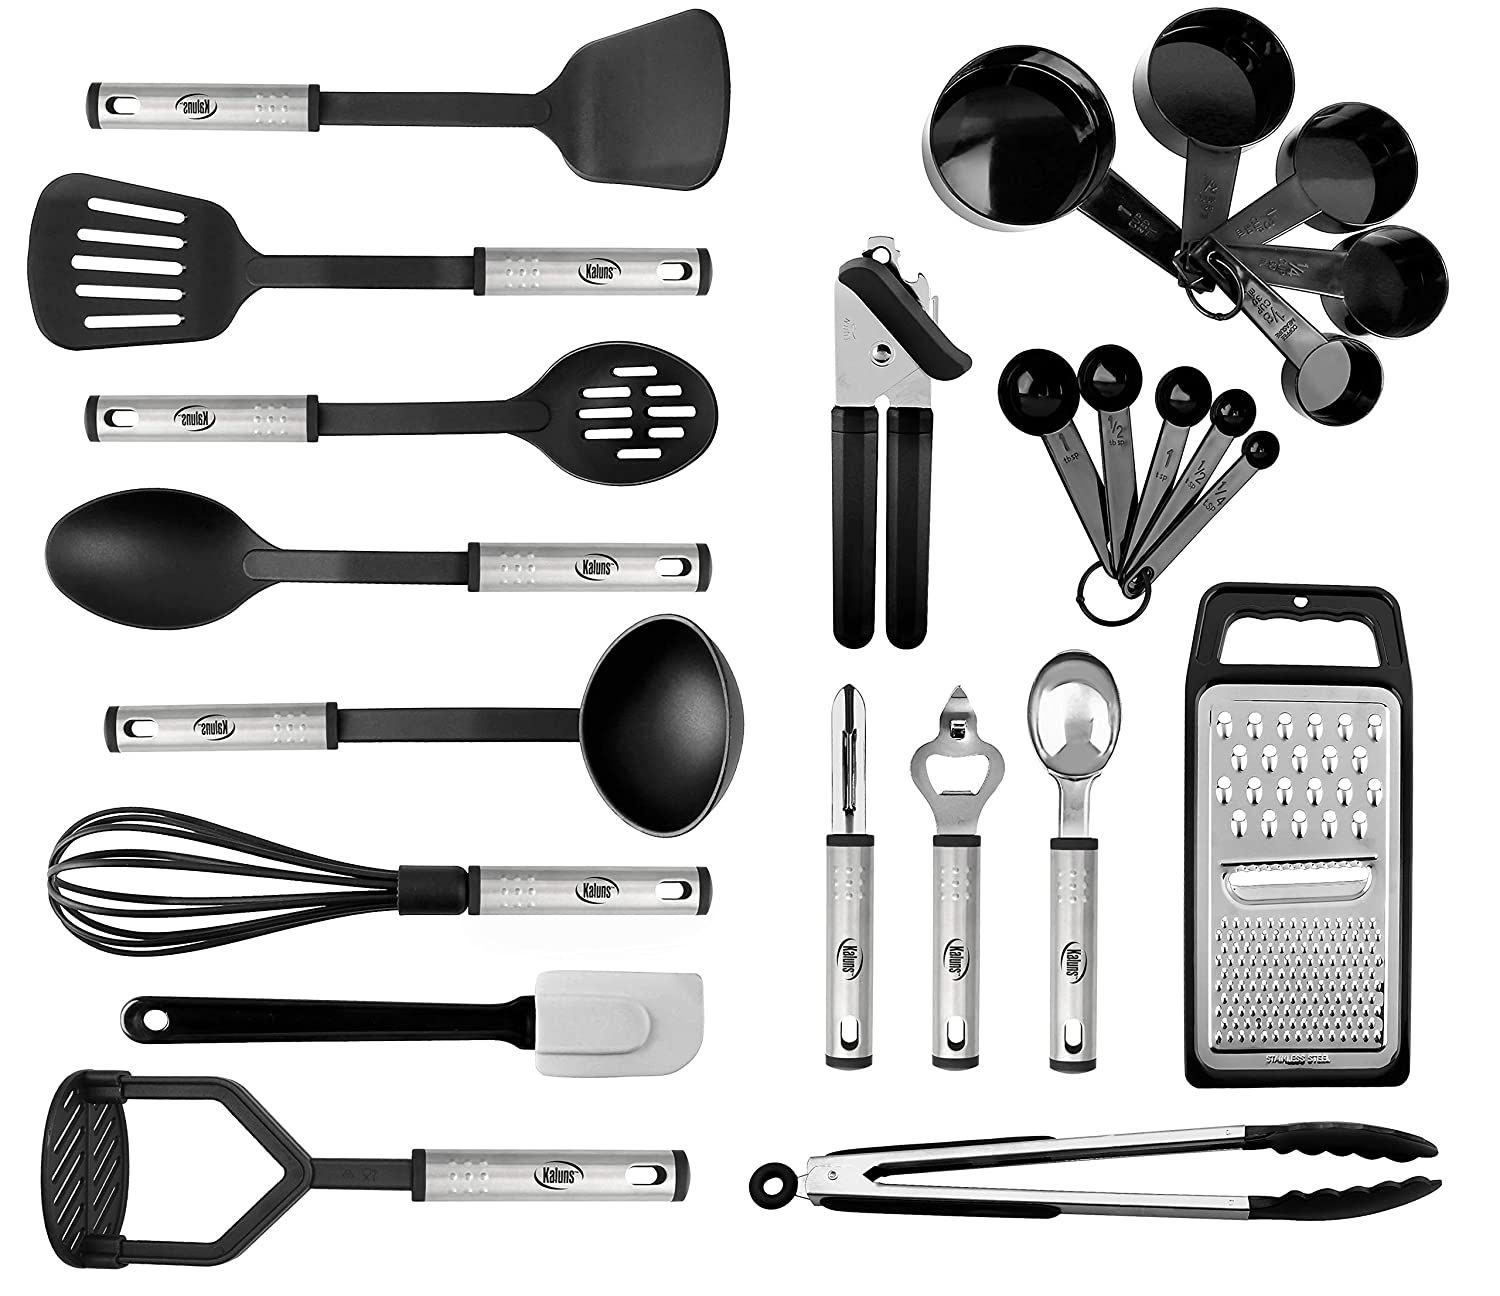 Kitchen Utensil Set 24 Nylon Stainless Steel Cooking Supplies Non Stick And Heat Resistant Cookware Set New Chef S Kitchen Gadget Tools